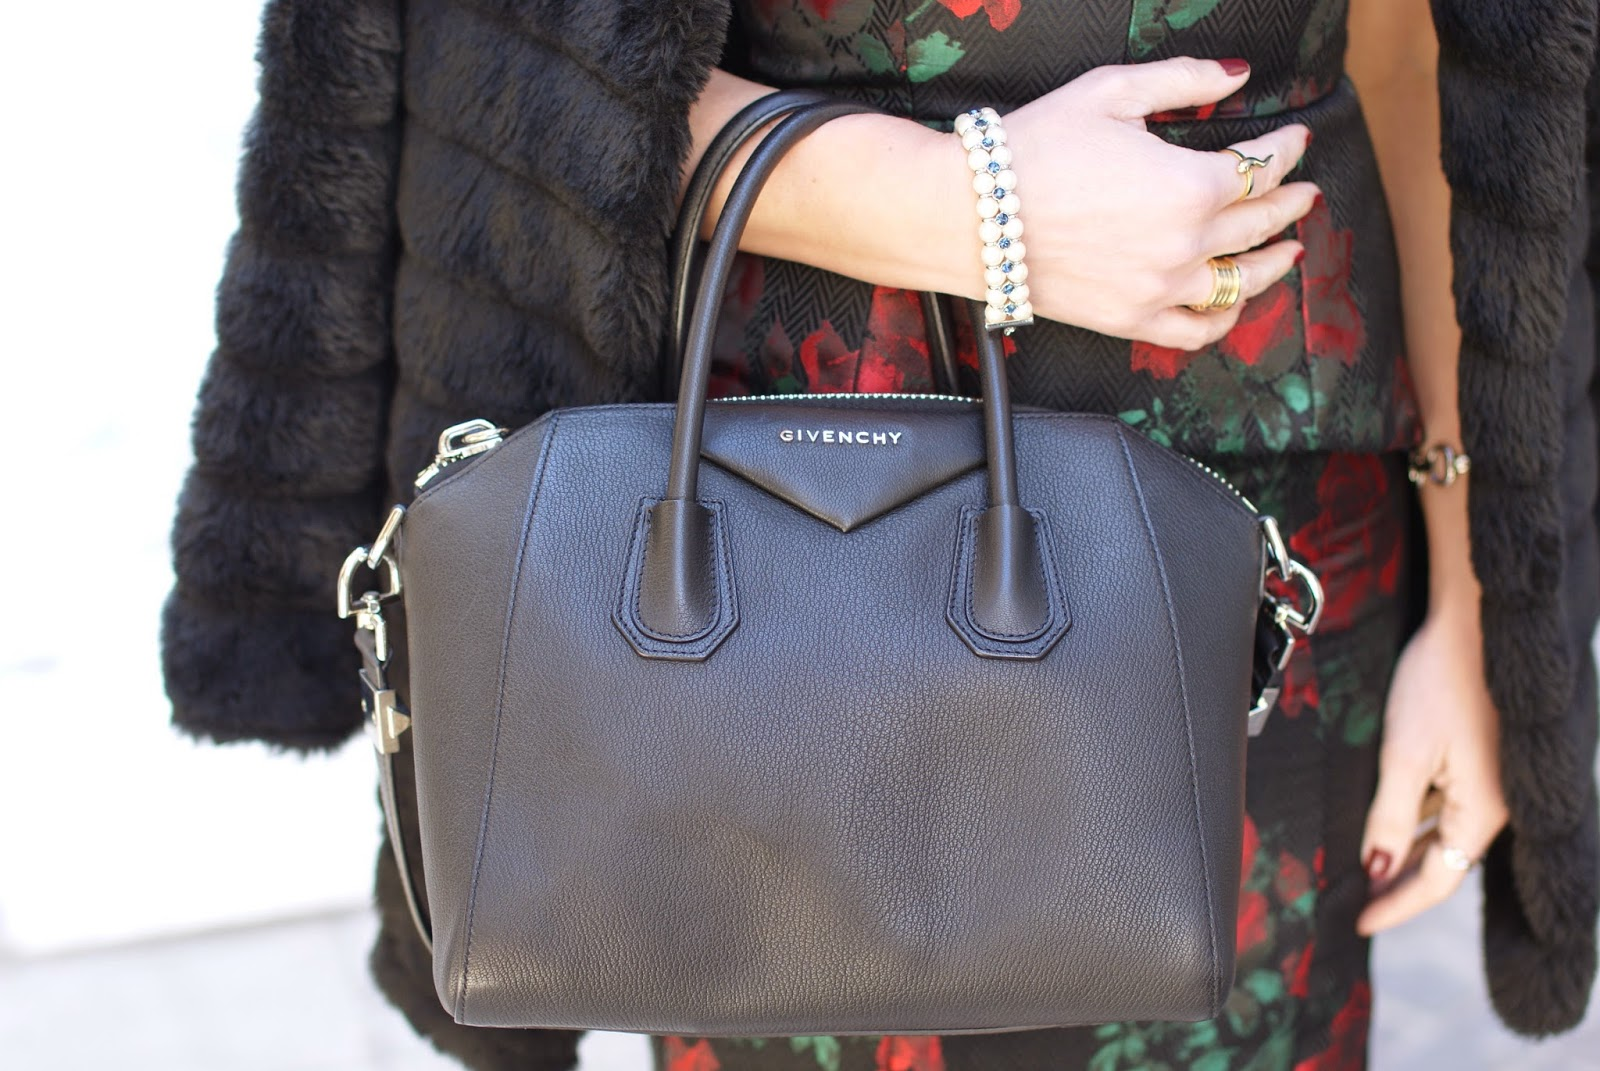 Givenchy Antigona bag small size in black caviar leather on Fashion and Cookies fashion blog